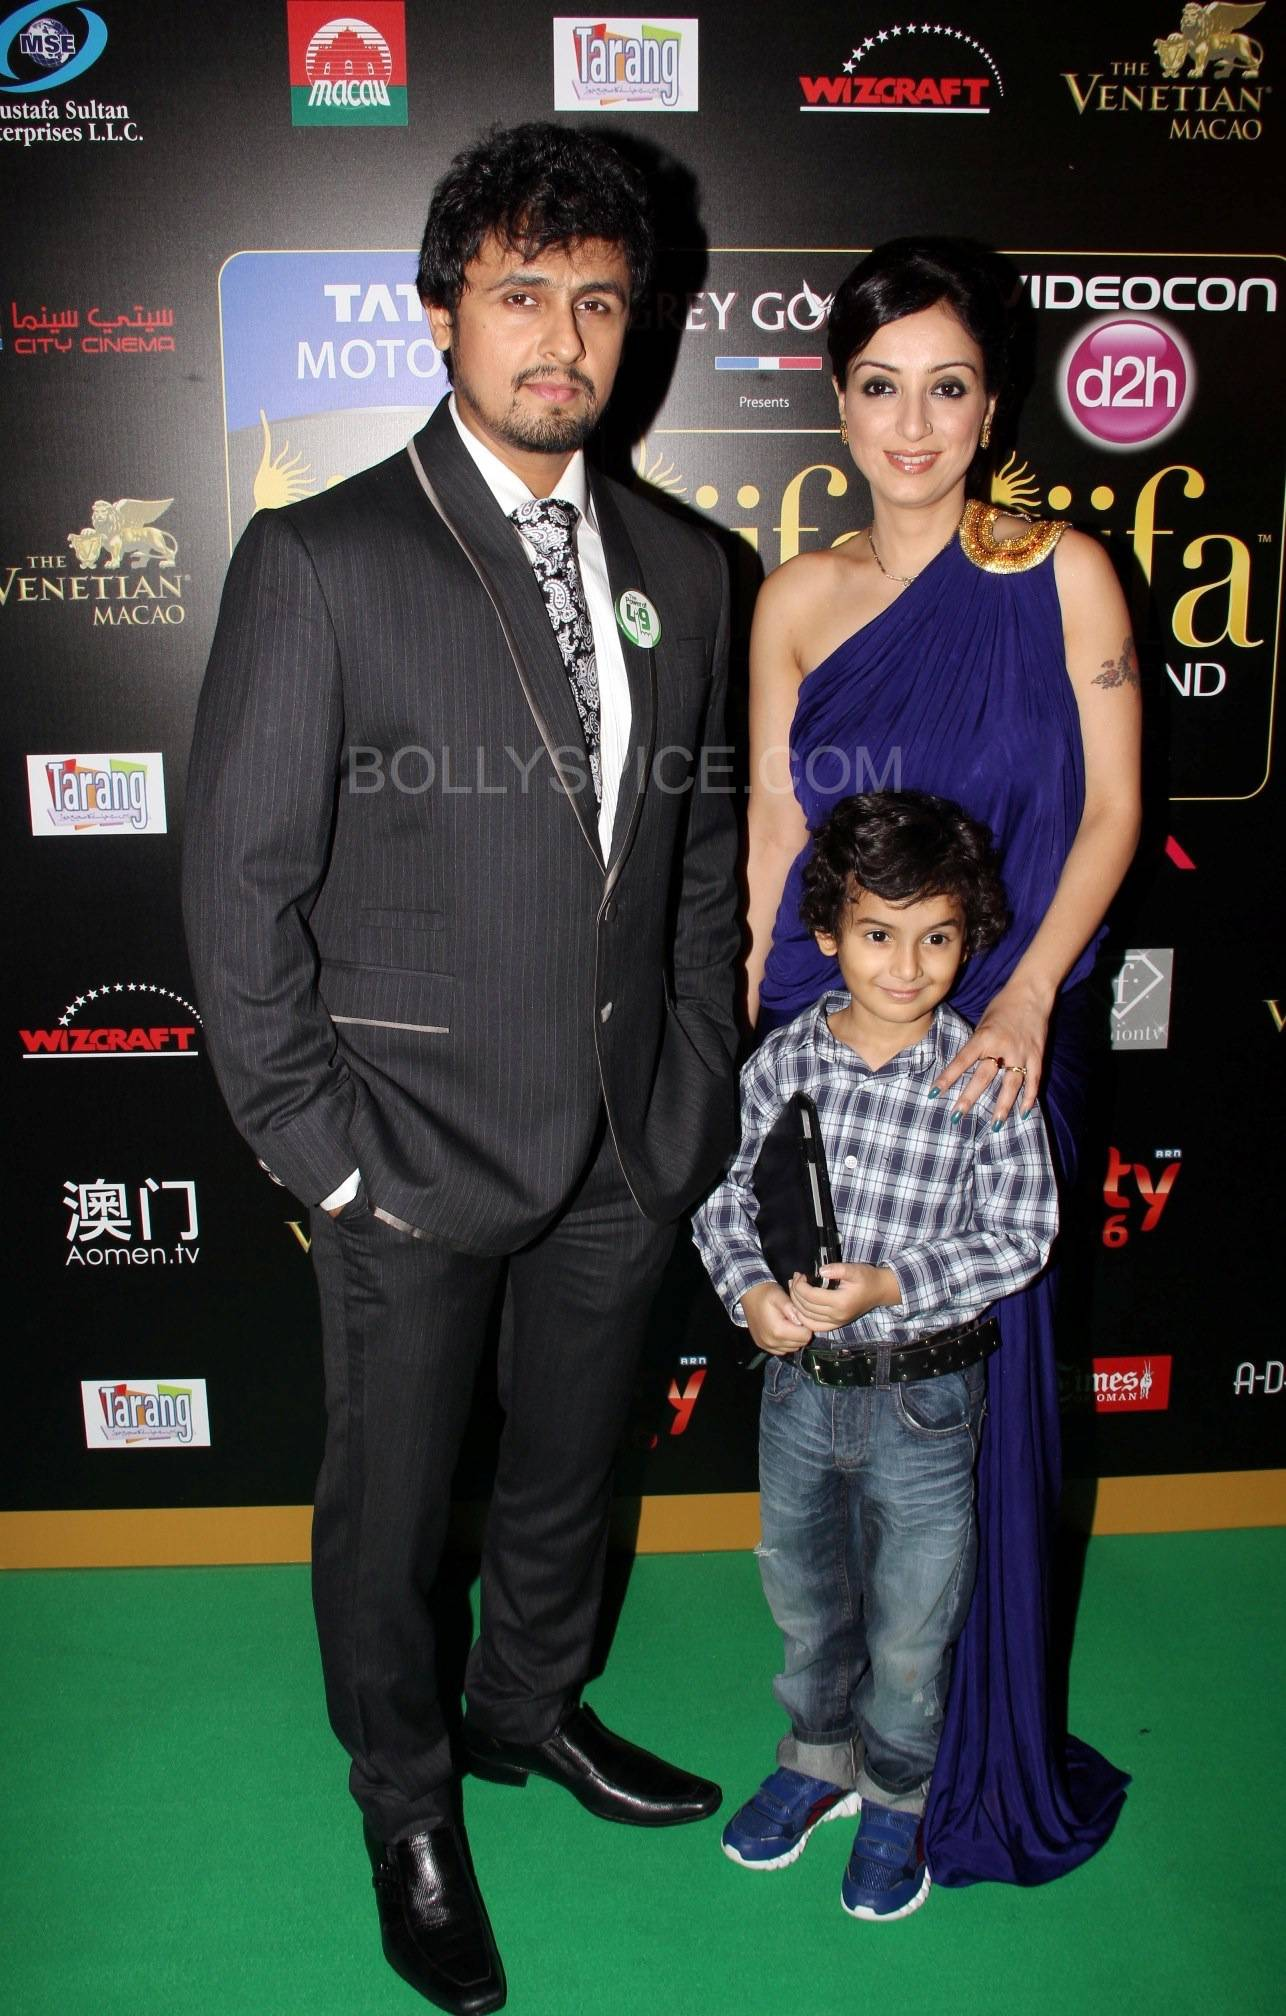 Sonu Nigam at IIFA Rocks Green carpet More from IIFA Rocks including winners and more Green Carpet pics! Pics added!